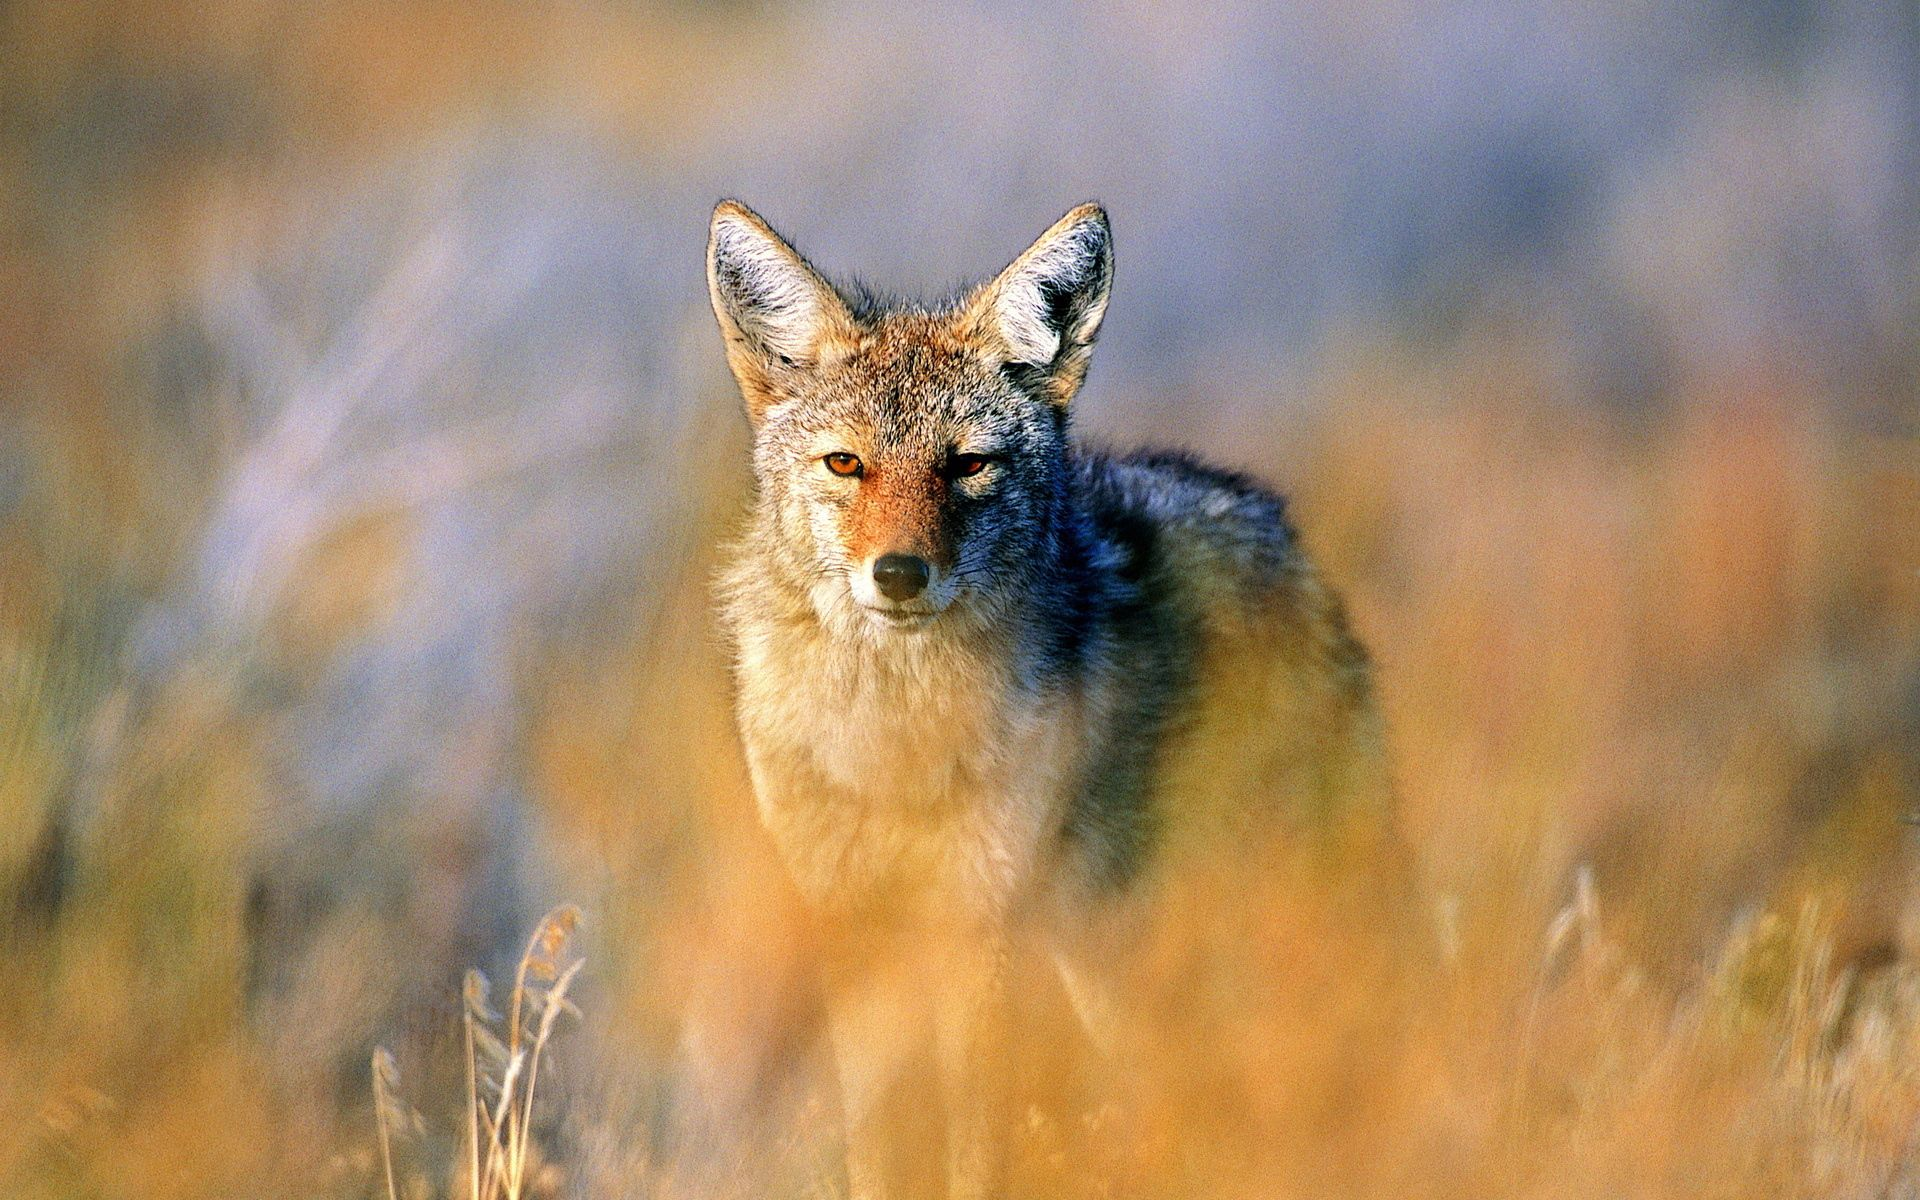 72631 download wallpaper Animals, Jackal, Hunting, Hunt, Steppe screensavers and pictures for free